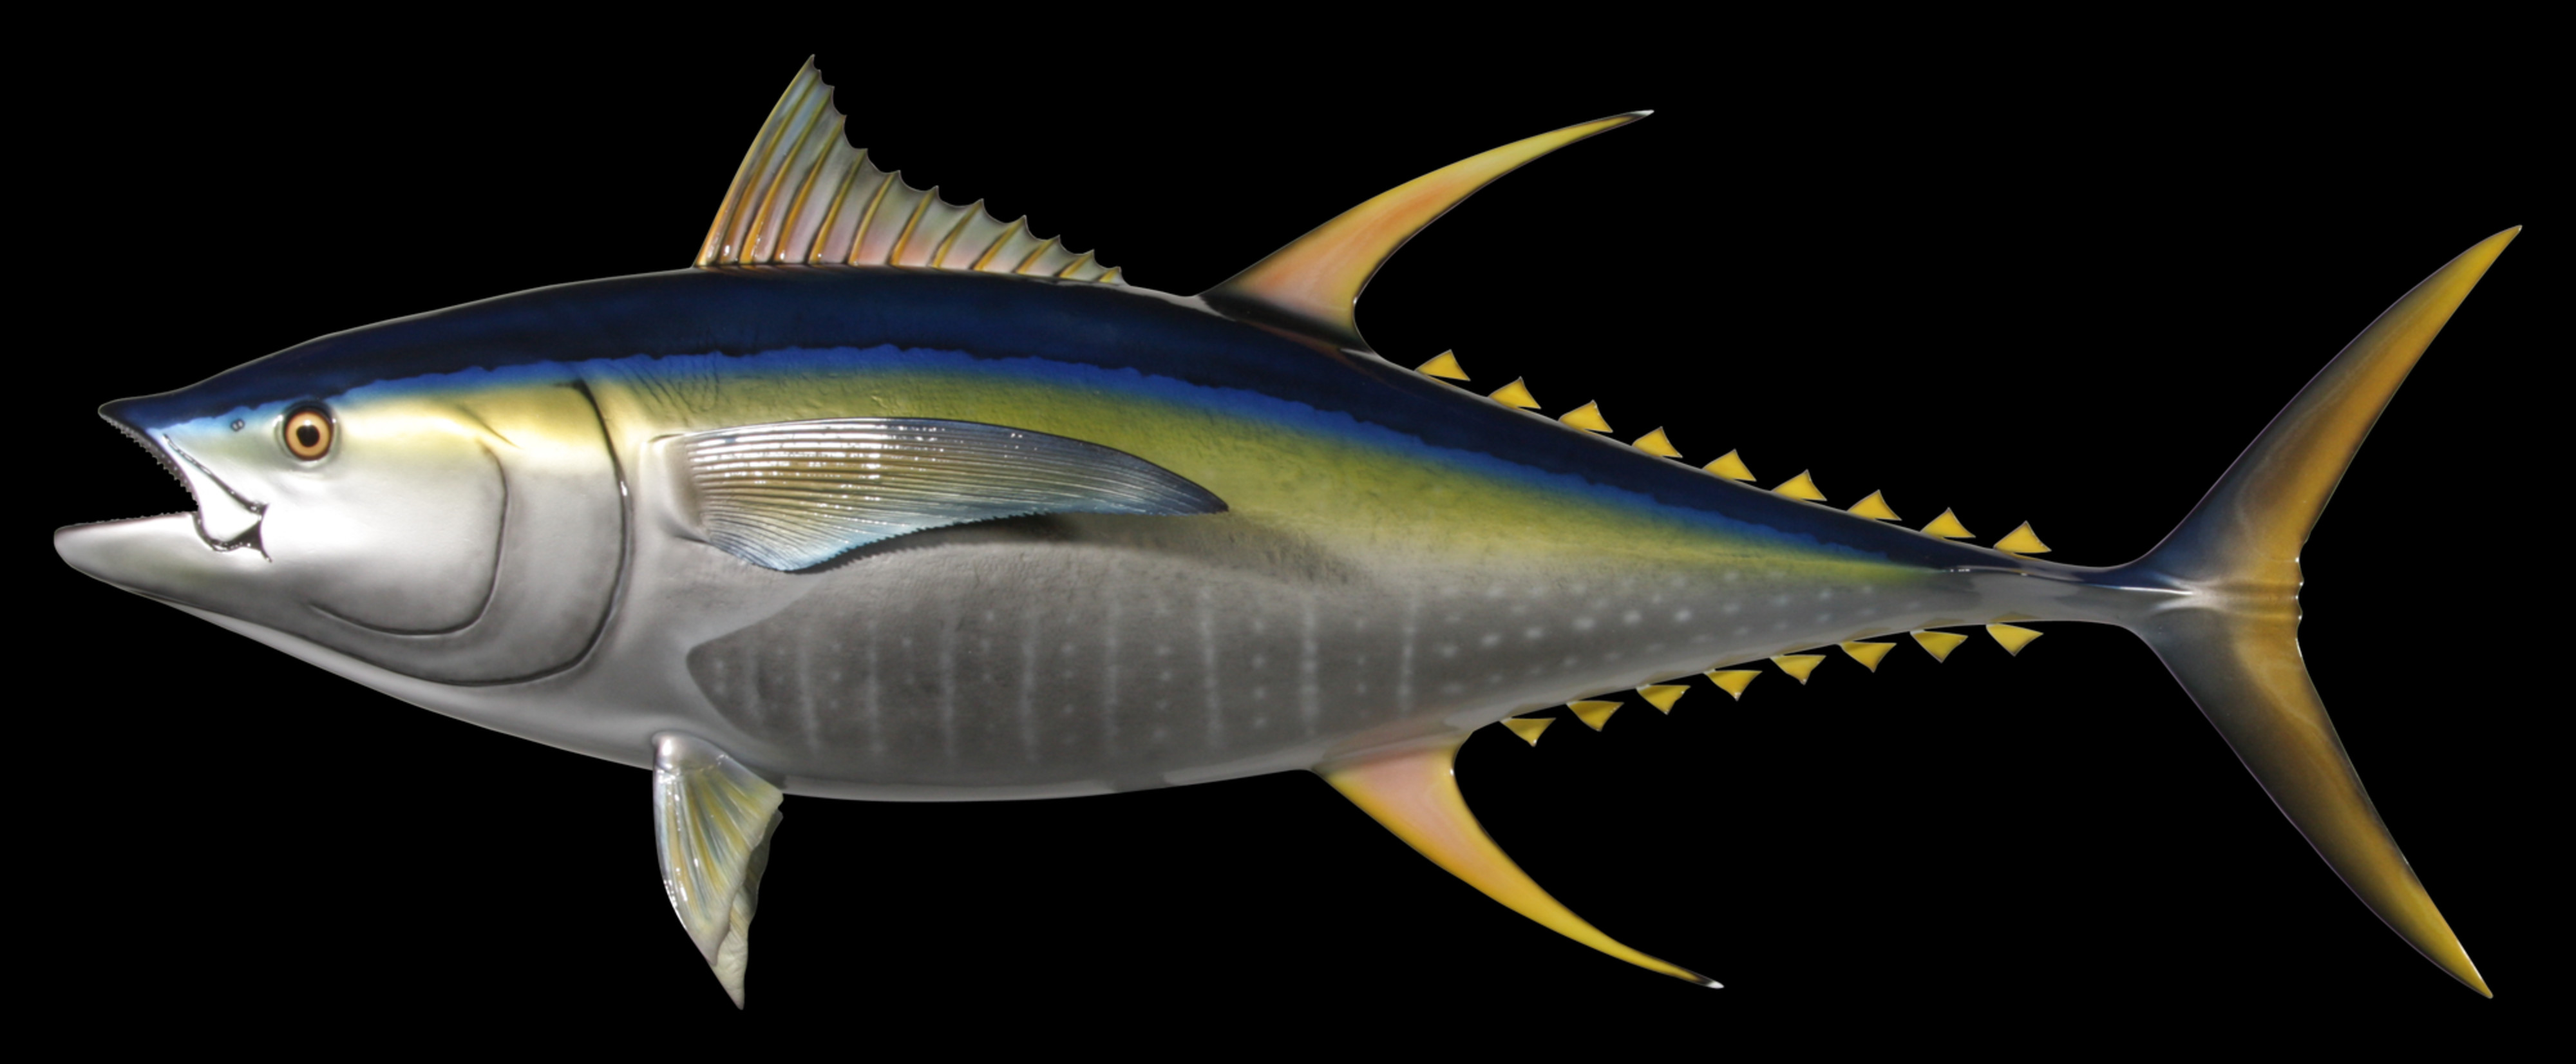 Yellowfin tuna fish mount and fish replicas coast to coast for Tuna fish can